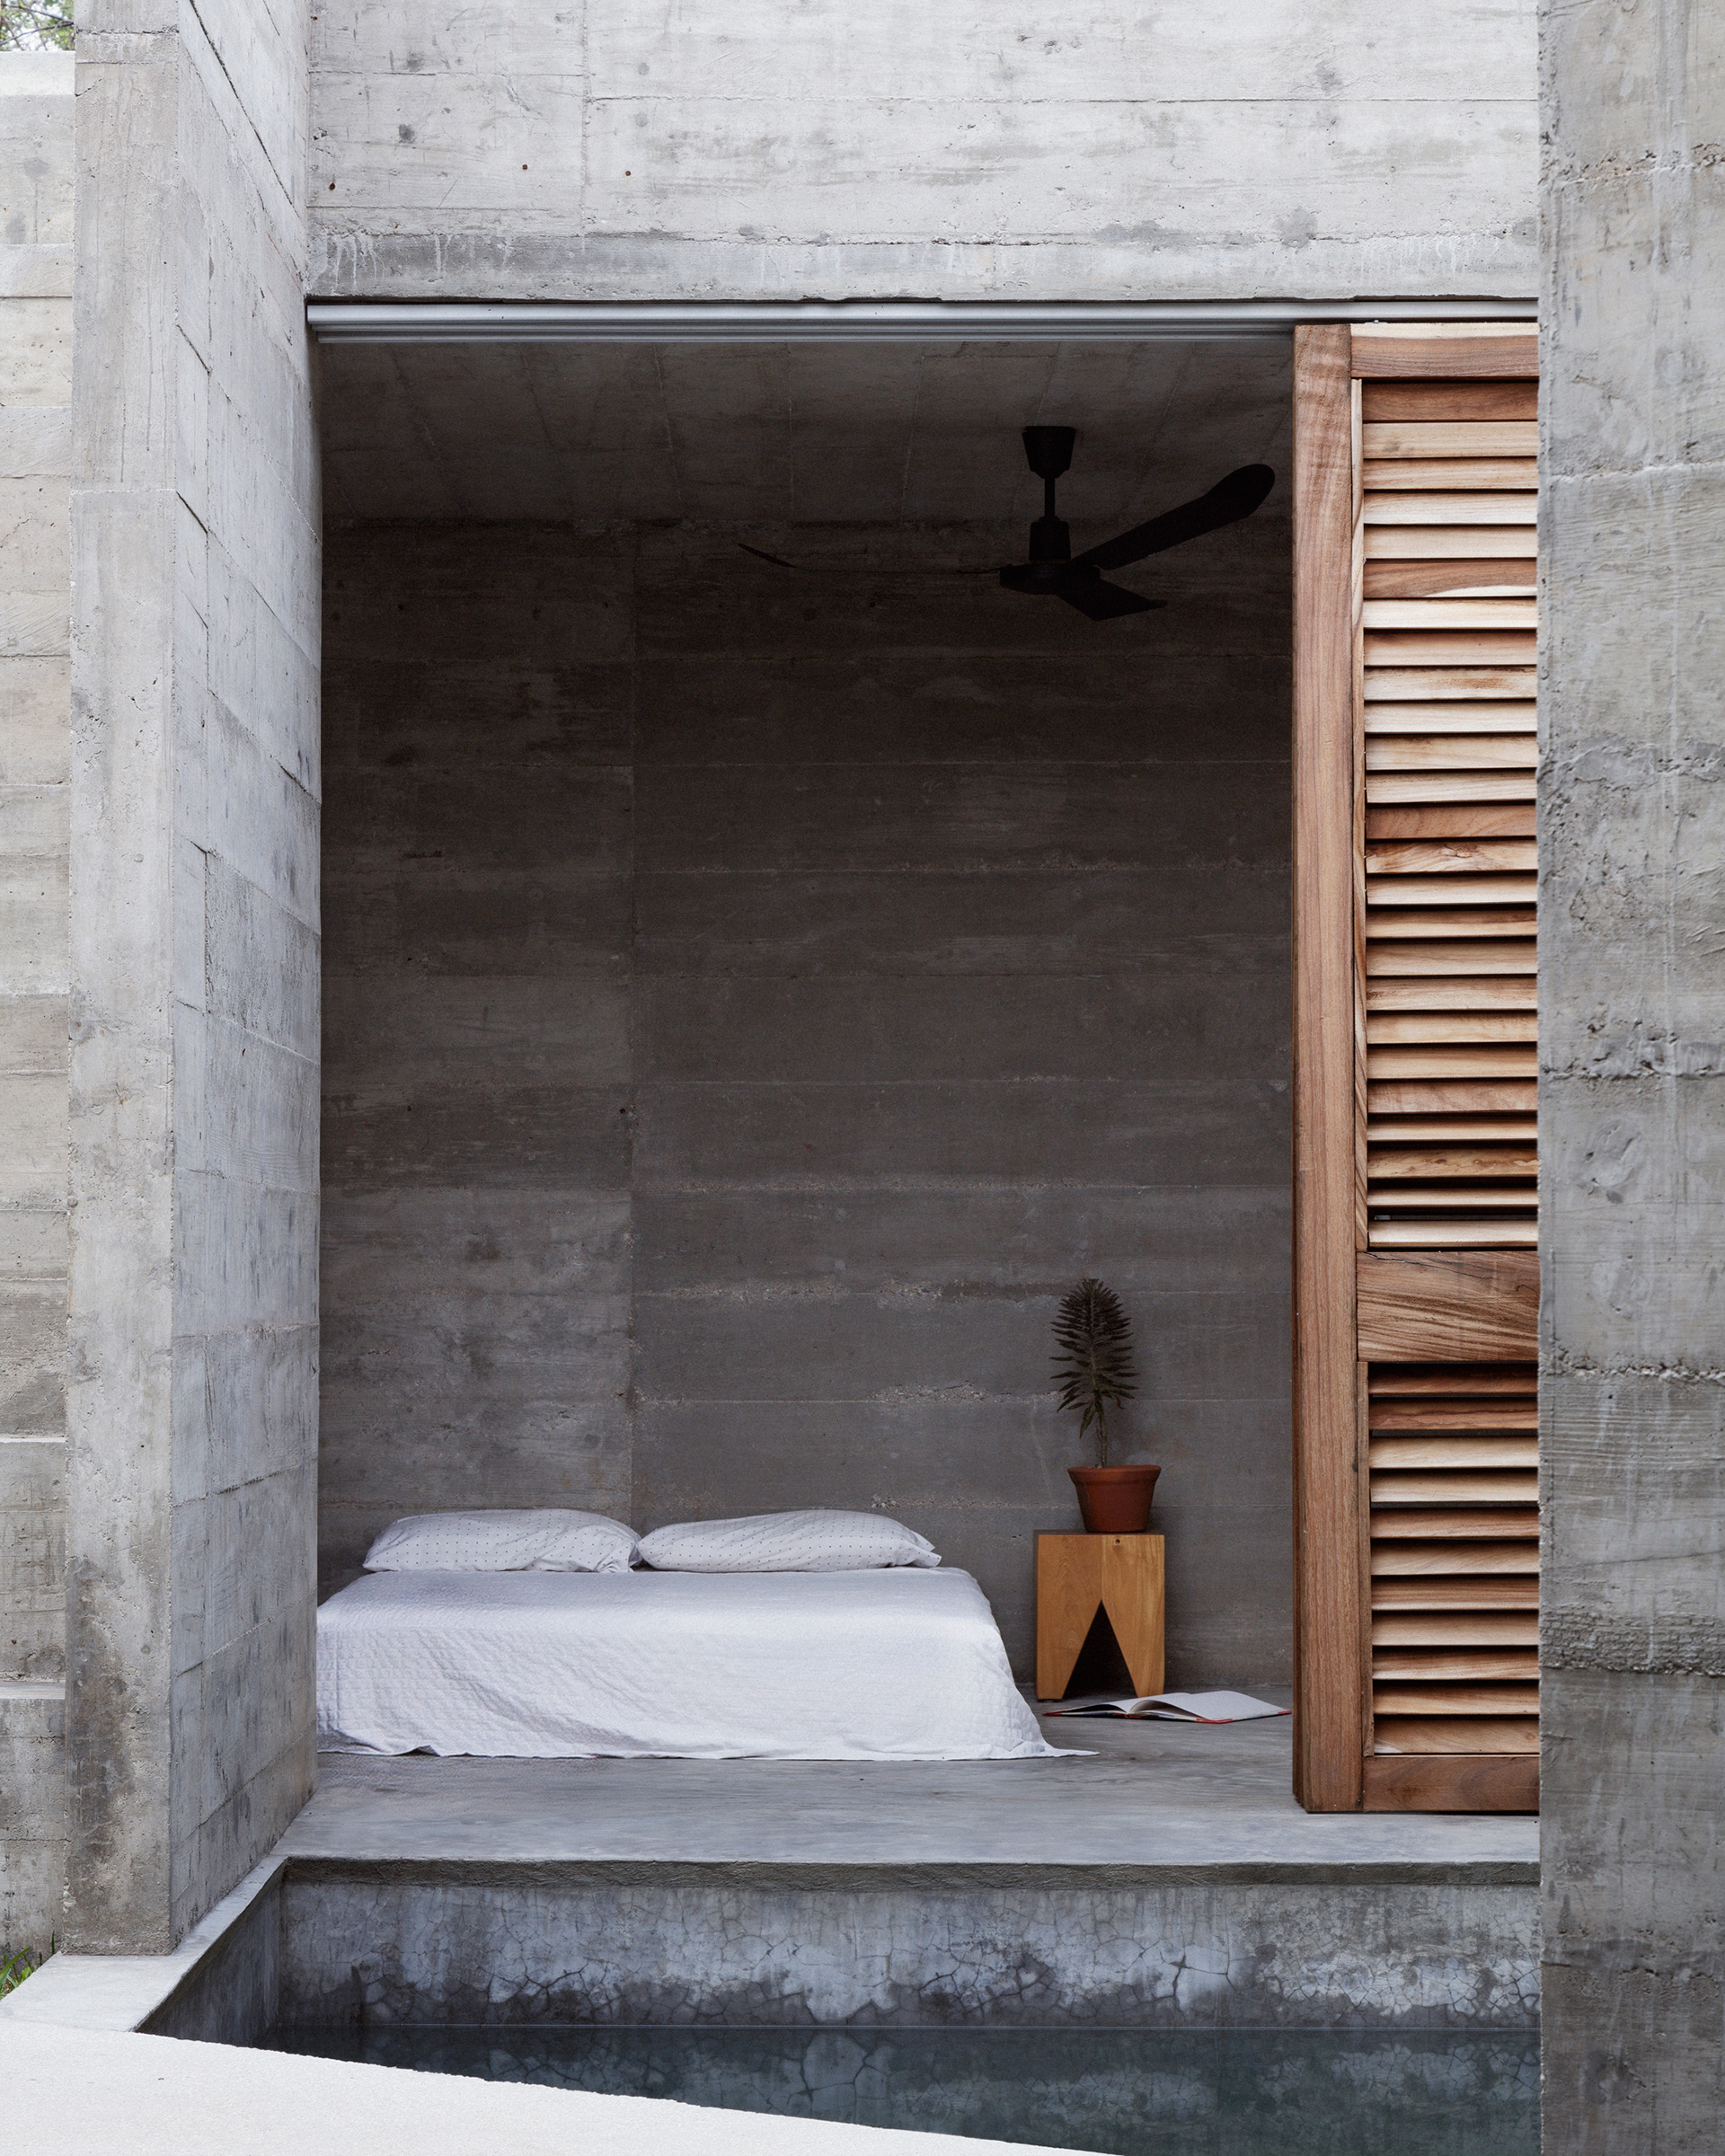 The bedrooms are positioned at the either ends of the swimming pool | Zicatela House | Mexico | Ludwig Godefroy |STIRworld